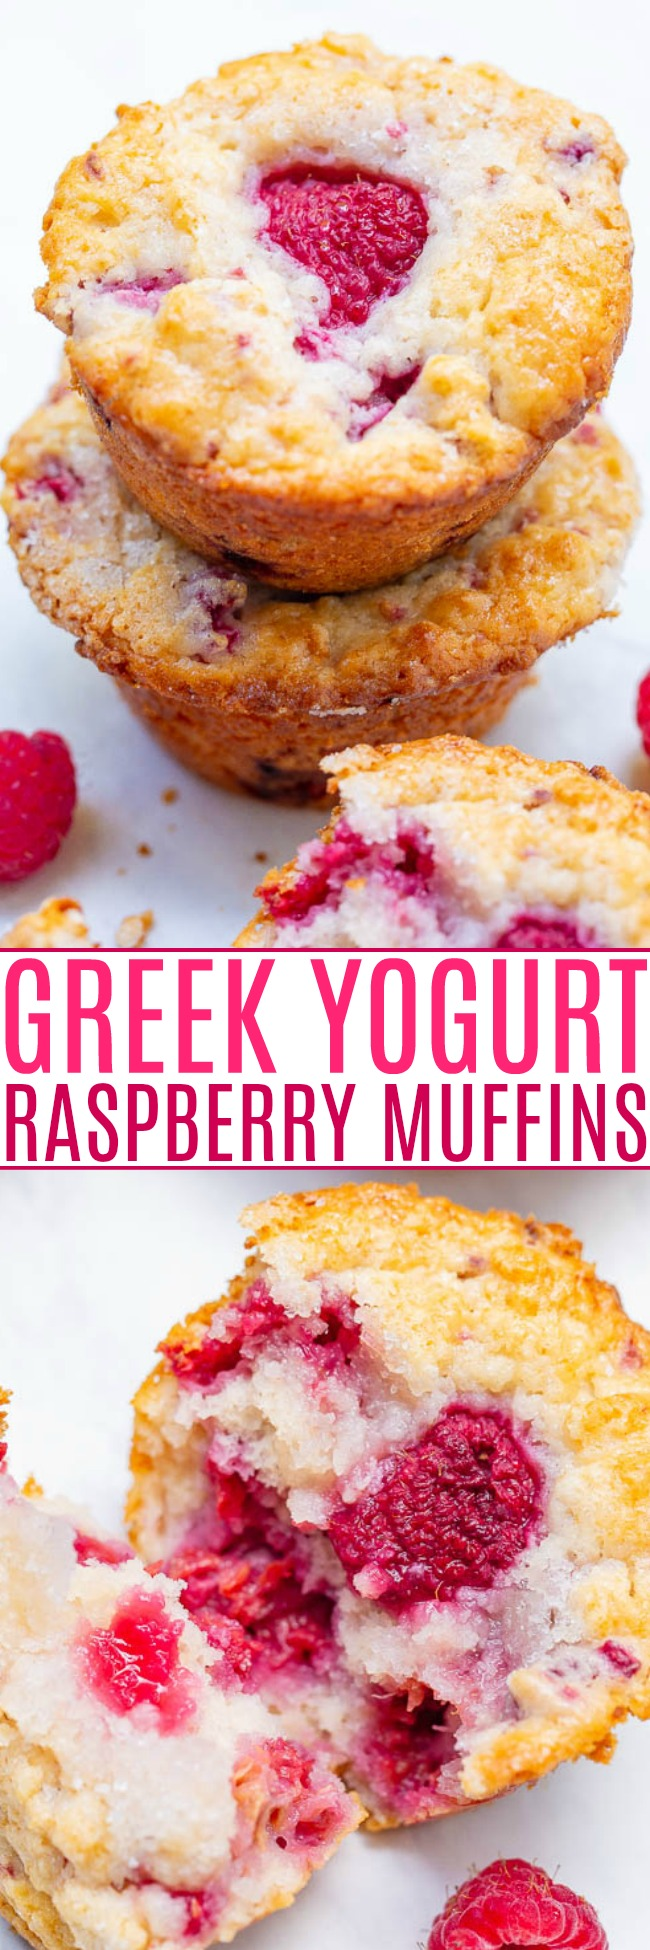 Greek Yogurt Raspberry Muffins - EASY, soft, fluffy muffins bursting with fresh raspberries!! So moist thanks to Greek yogurt in the batter! Not overly sweet and perfect with a cup of coffee or tea!!